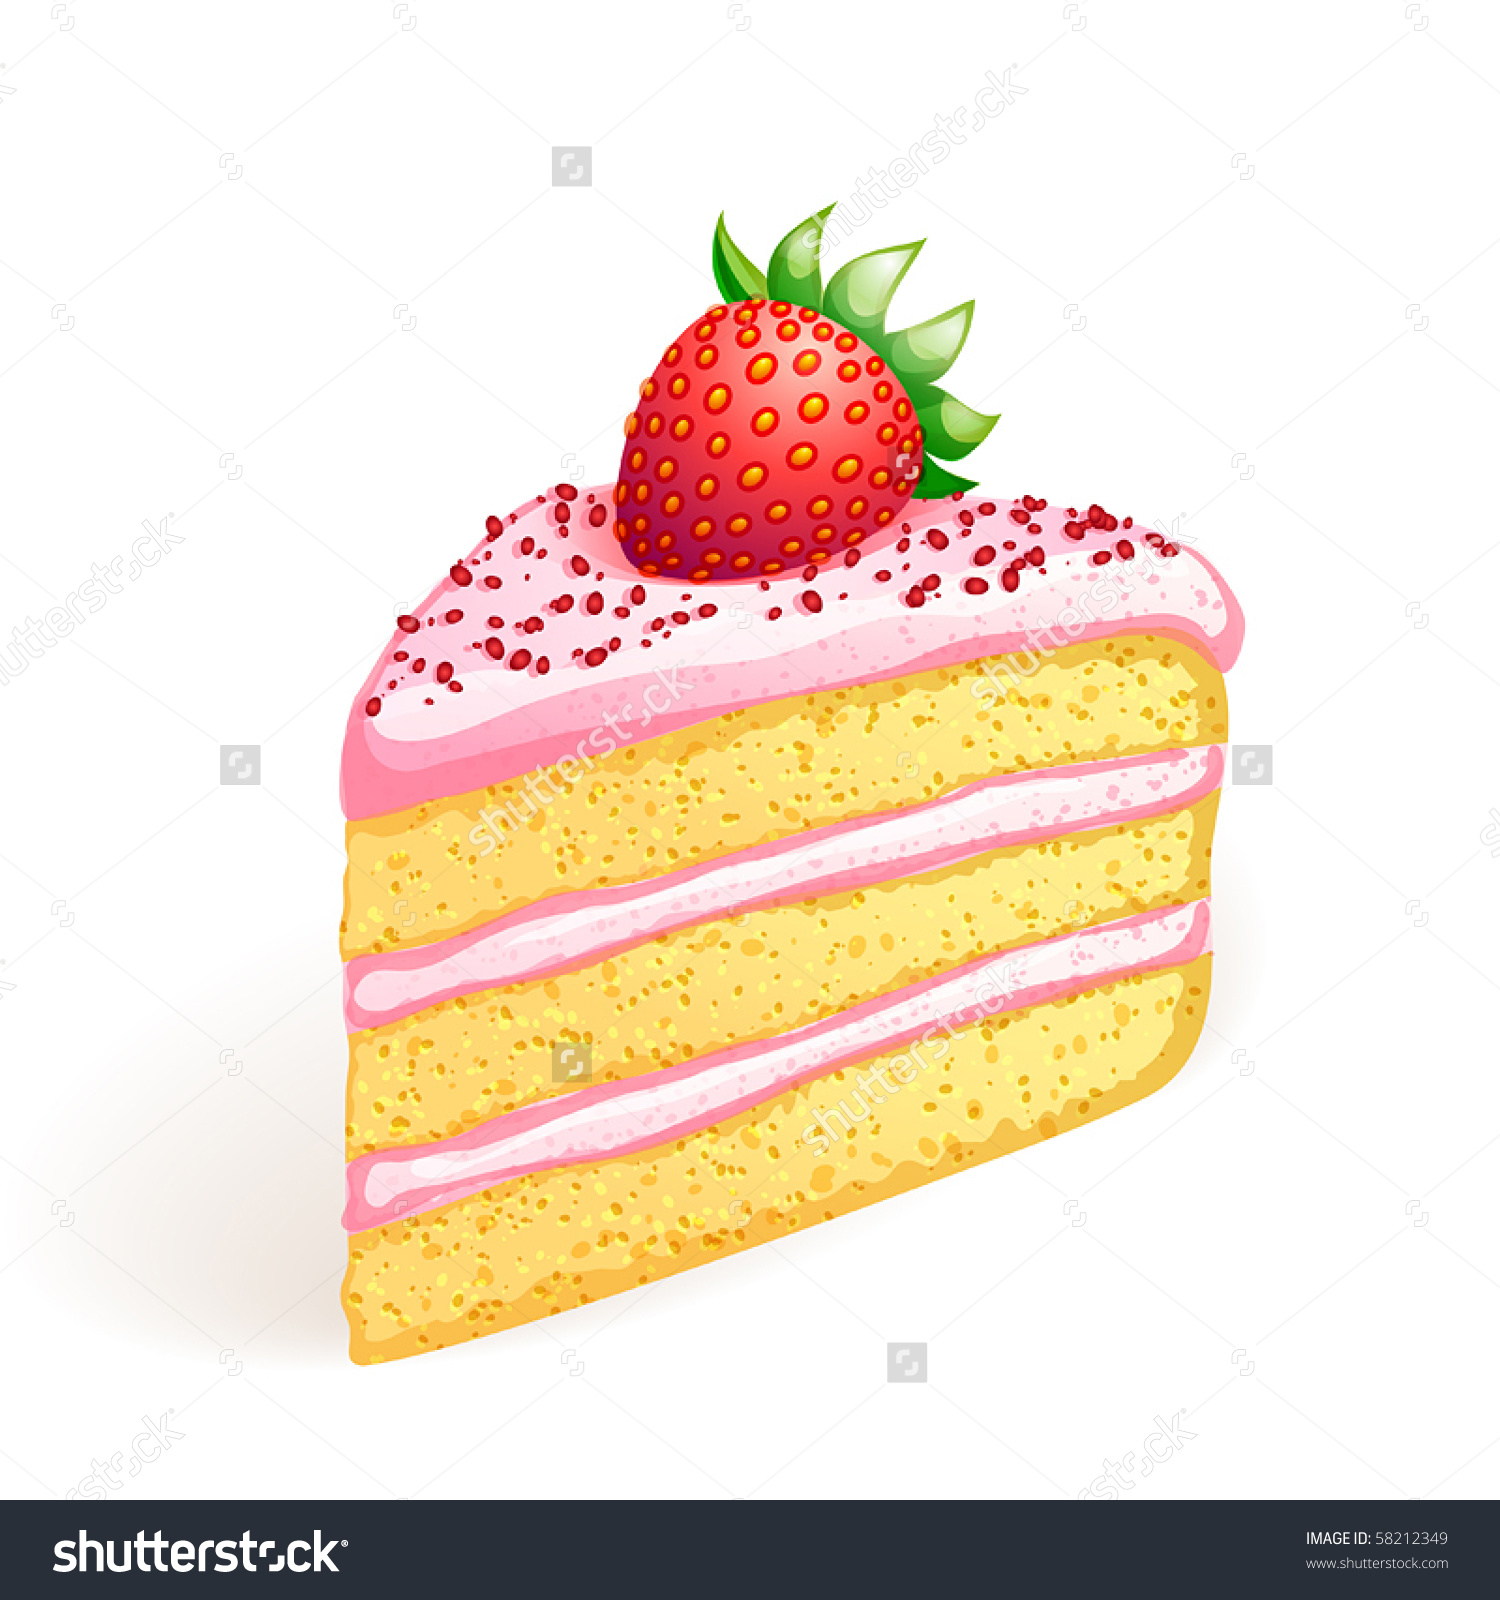 Clipart piece of cake.